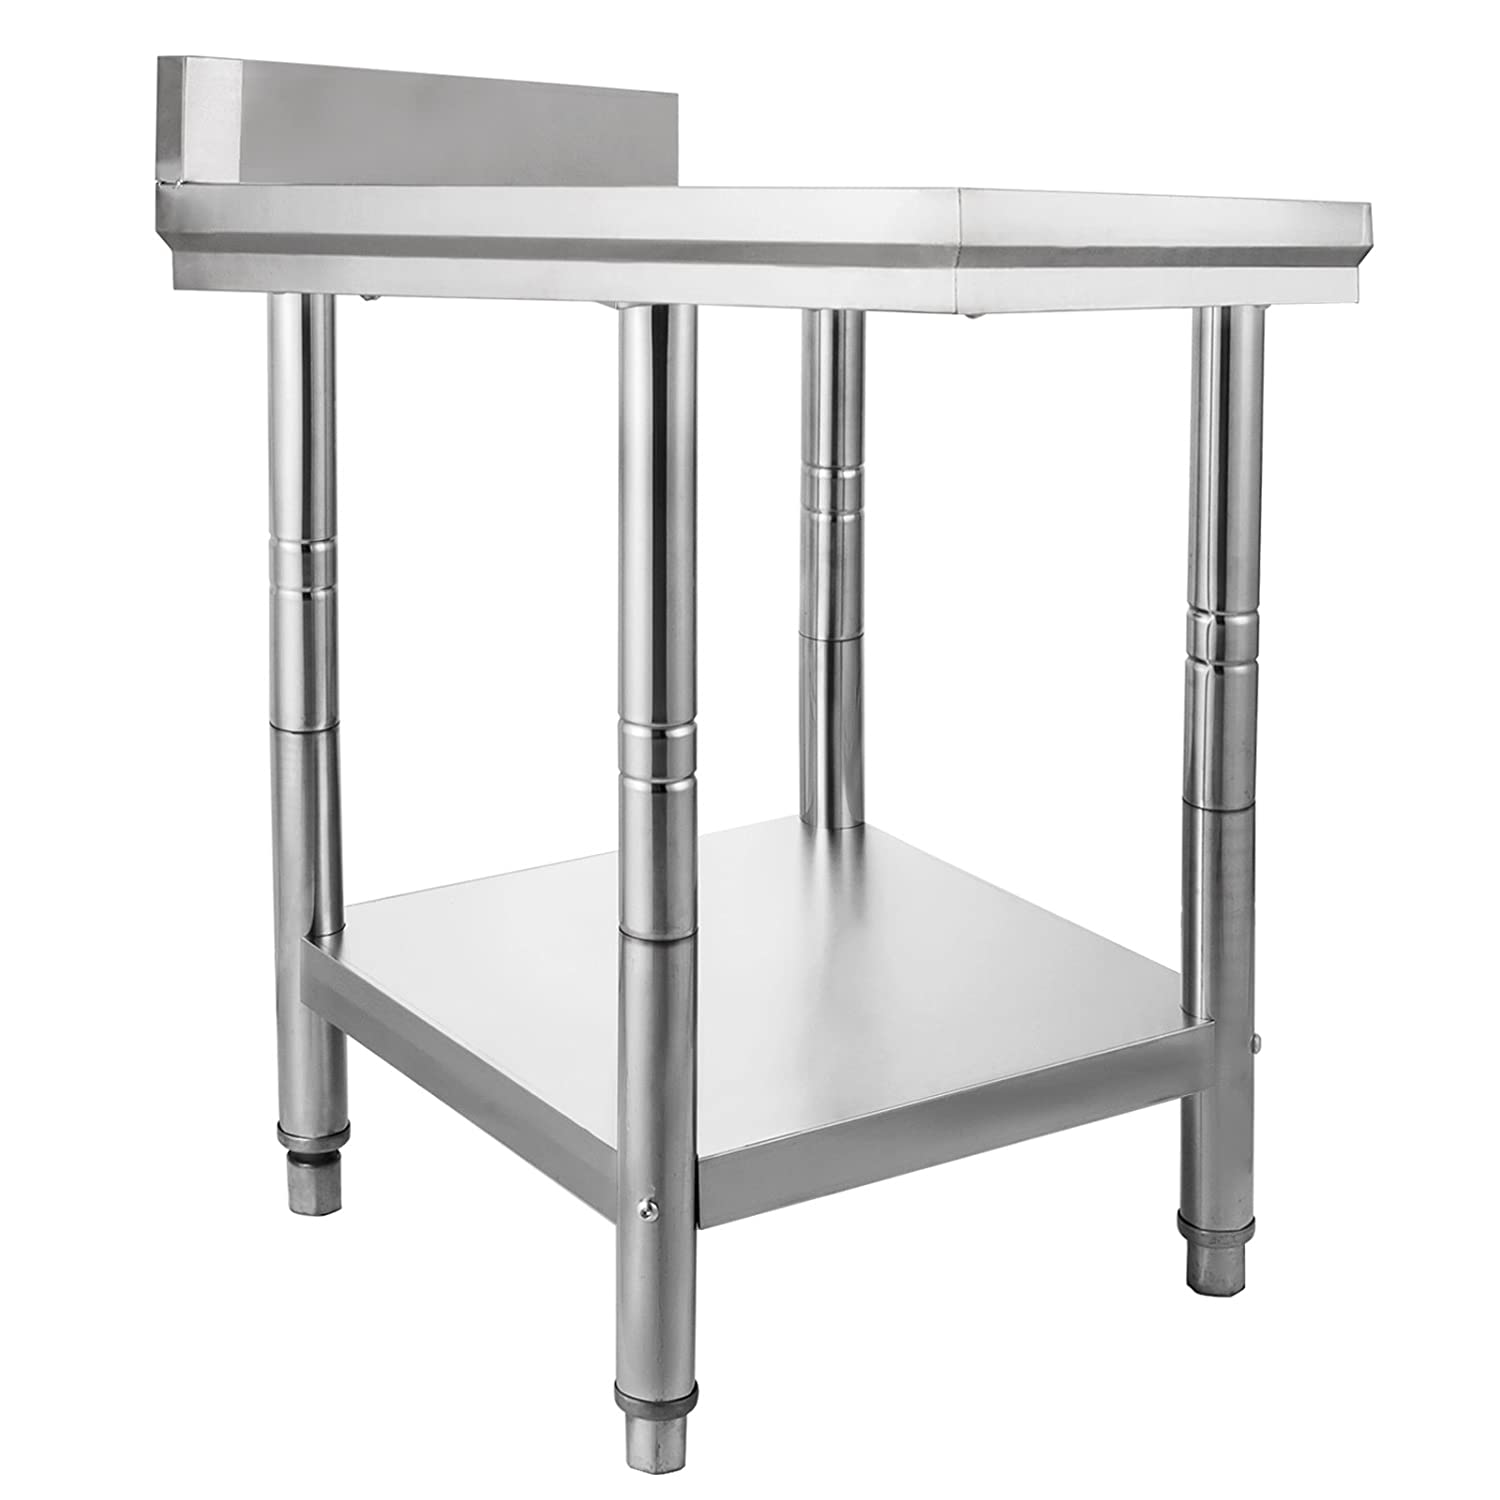 FORAVER 24 x 24 x 32 inches NSF Stainless Steel Work Table for Commercial Kitchen Prep Work Table 60X60X80cm with Lower Shelf Work Table Silvery for Commercial Kitchen Restaurant(60x60x80)